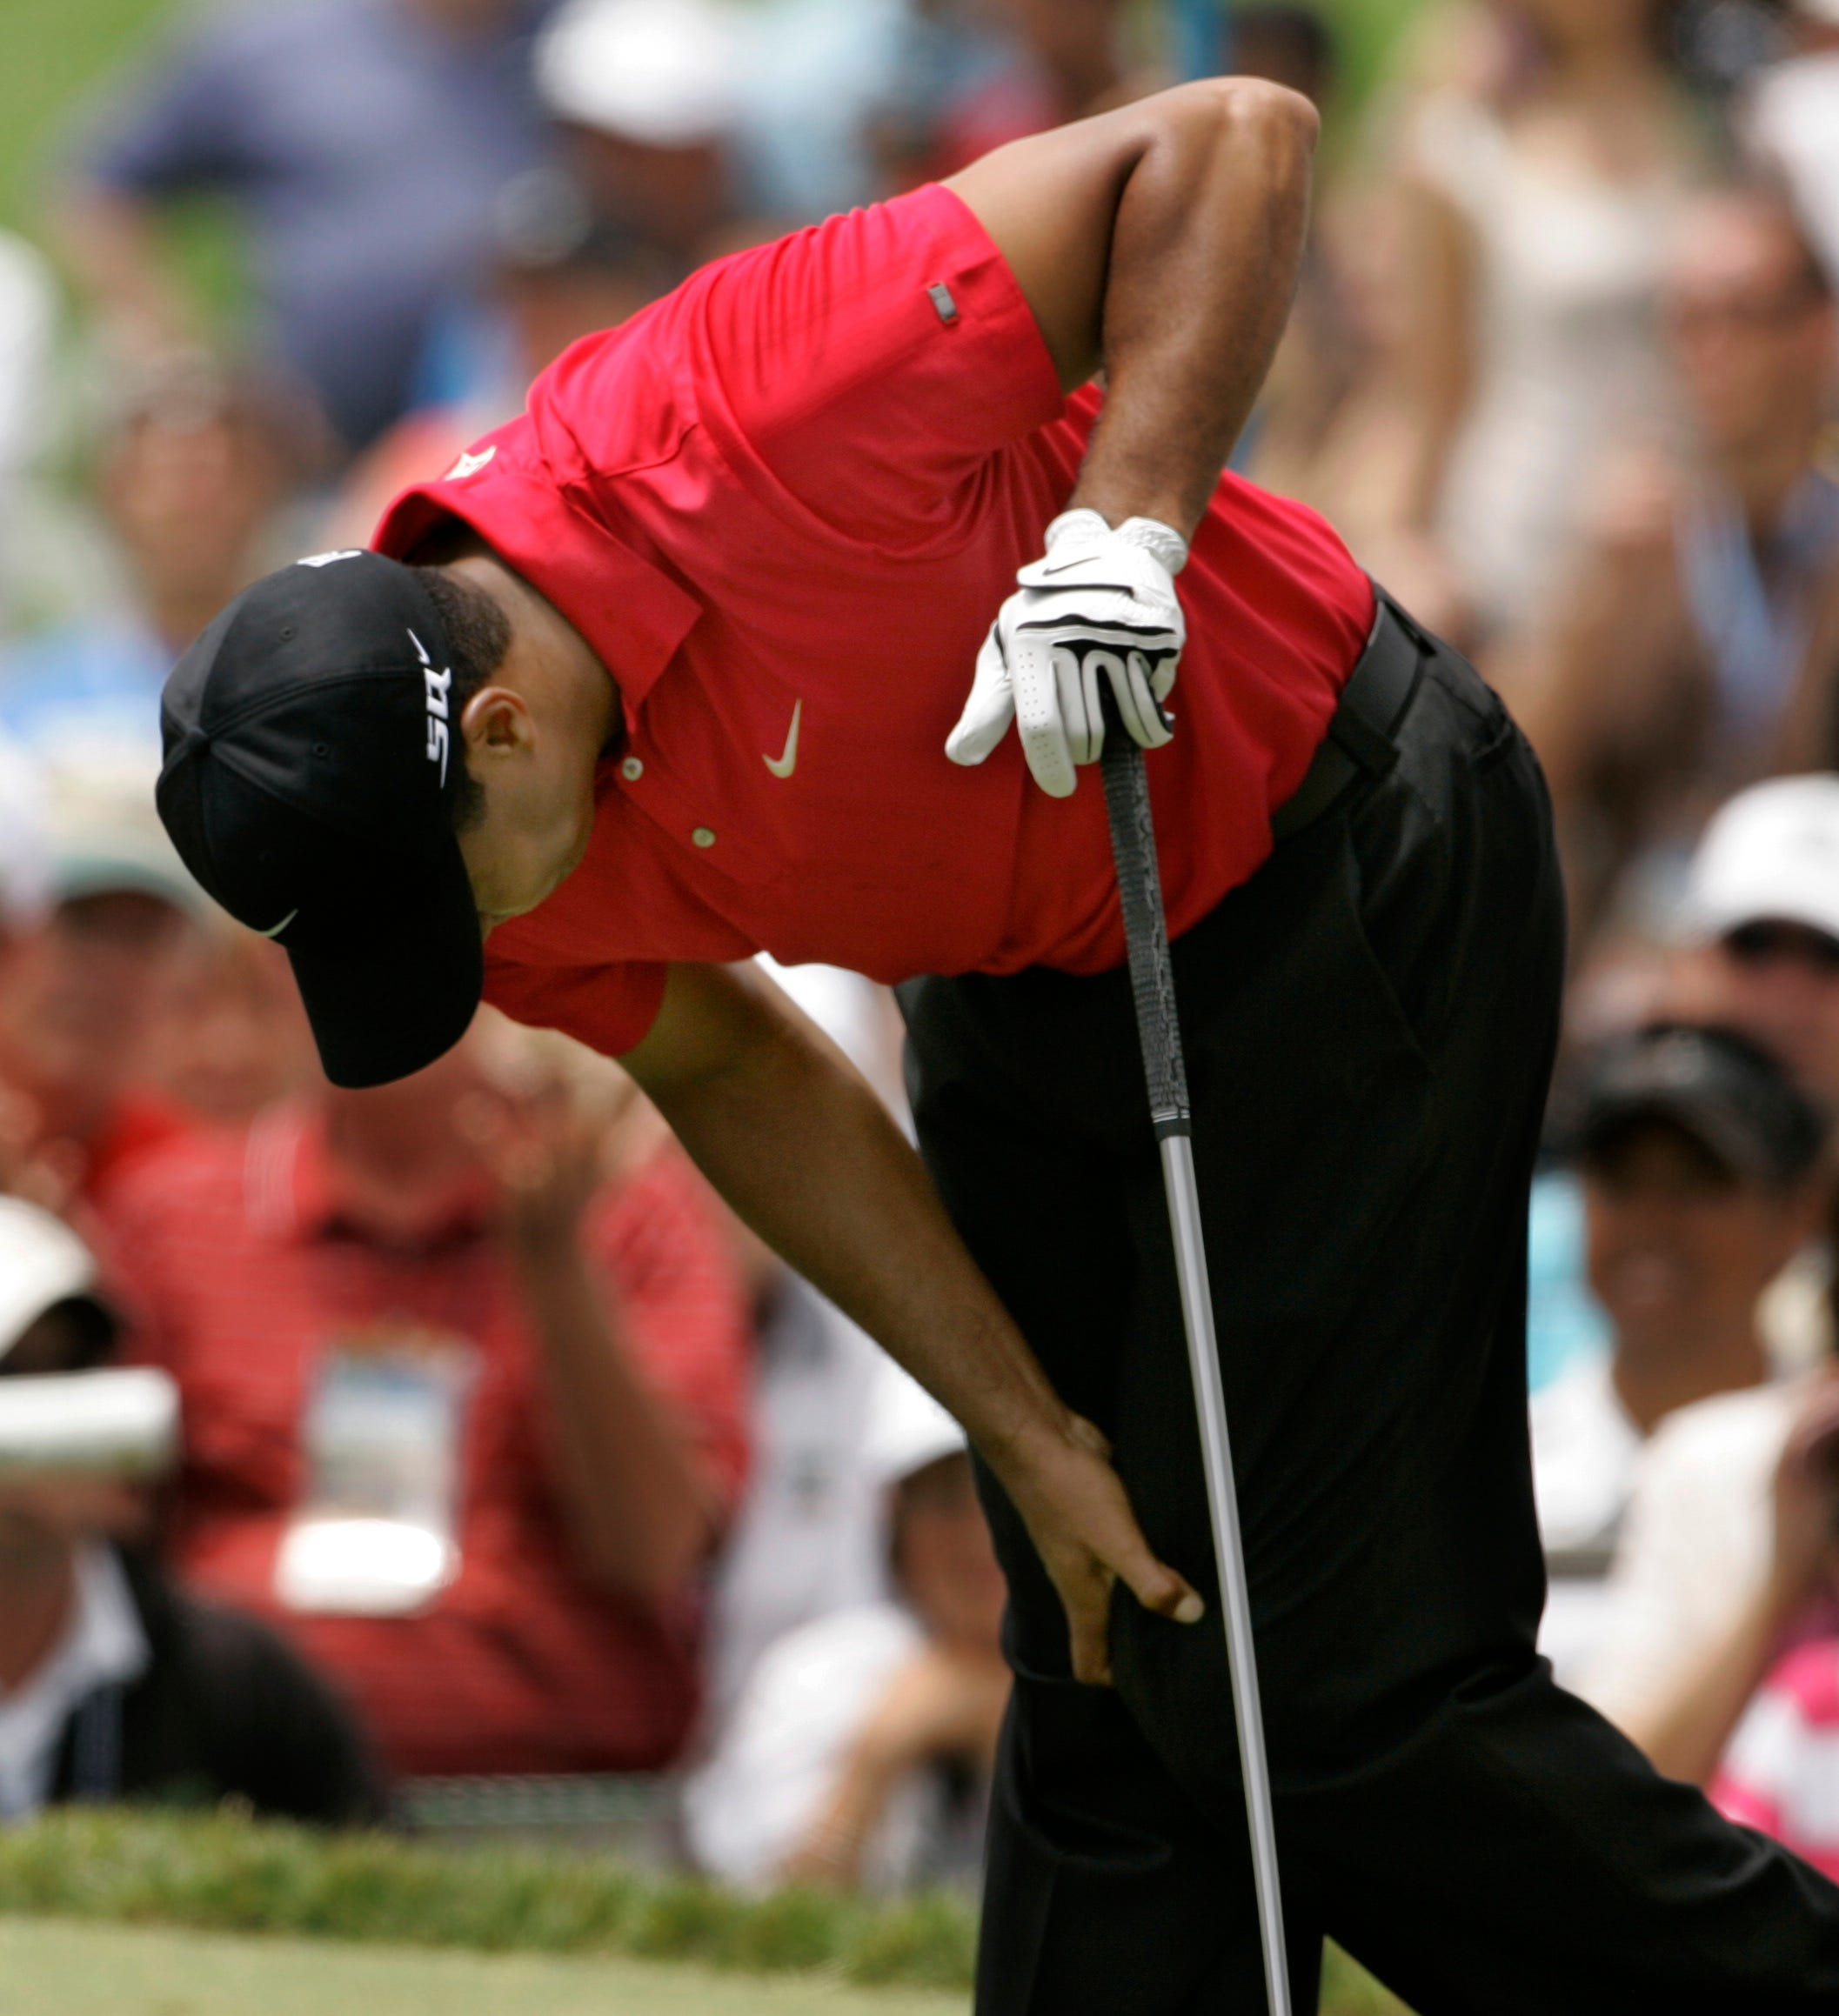 Is Tiger Woods  injury career-ending? It s too soon to know, but Ben Hogan s story is a miracle worth remembering